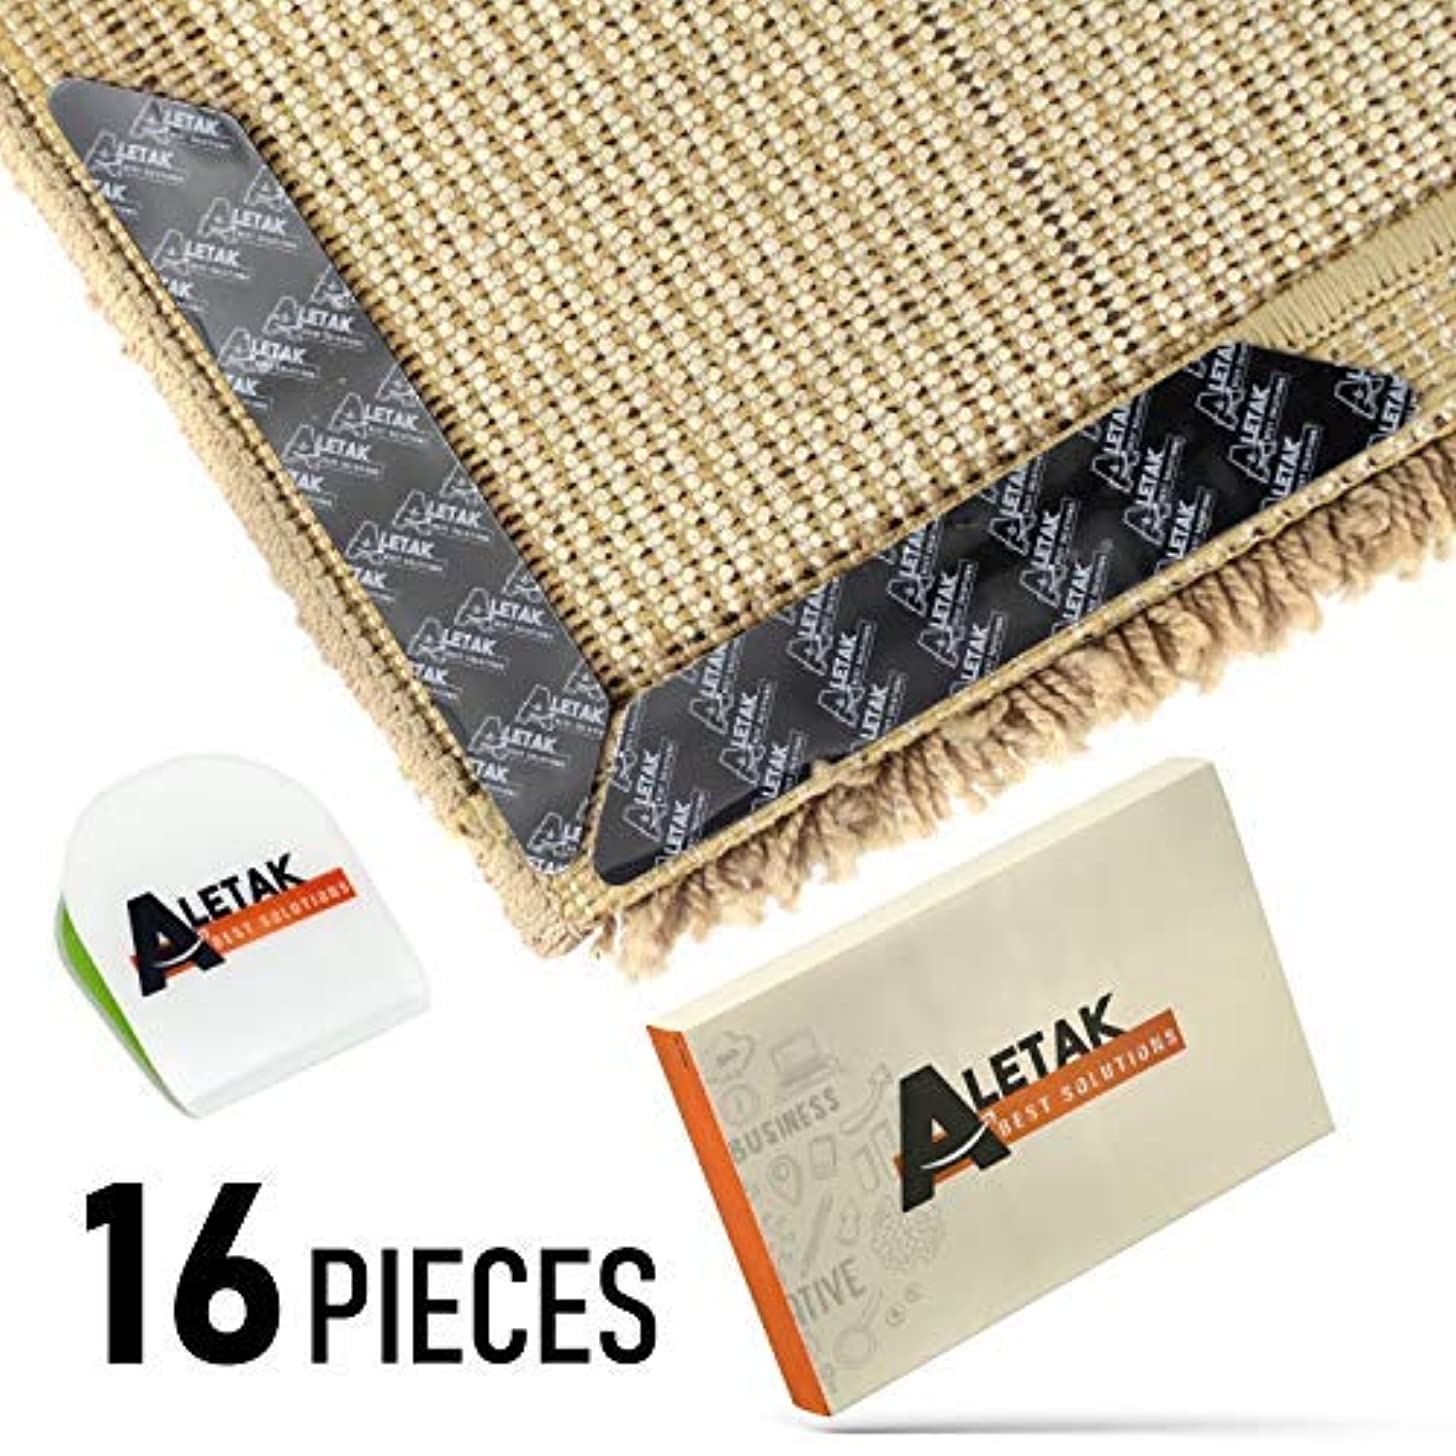 Anti Curling and Anti Slip Rug Gripper - Bonus Phone Sticker Holder - 3M Premium Carpet Gripper Tape - Keeps Your Rug in Place and Makes Corners Flat - 16 pcs Large Size